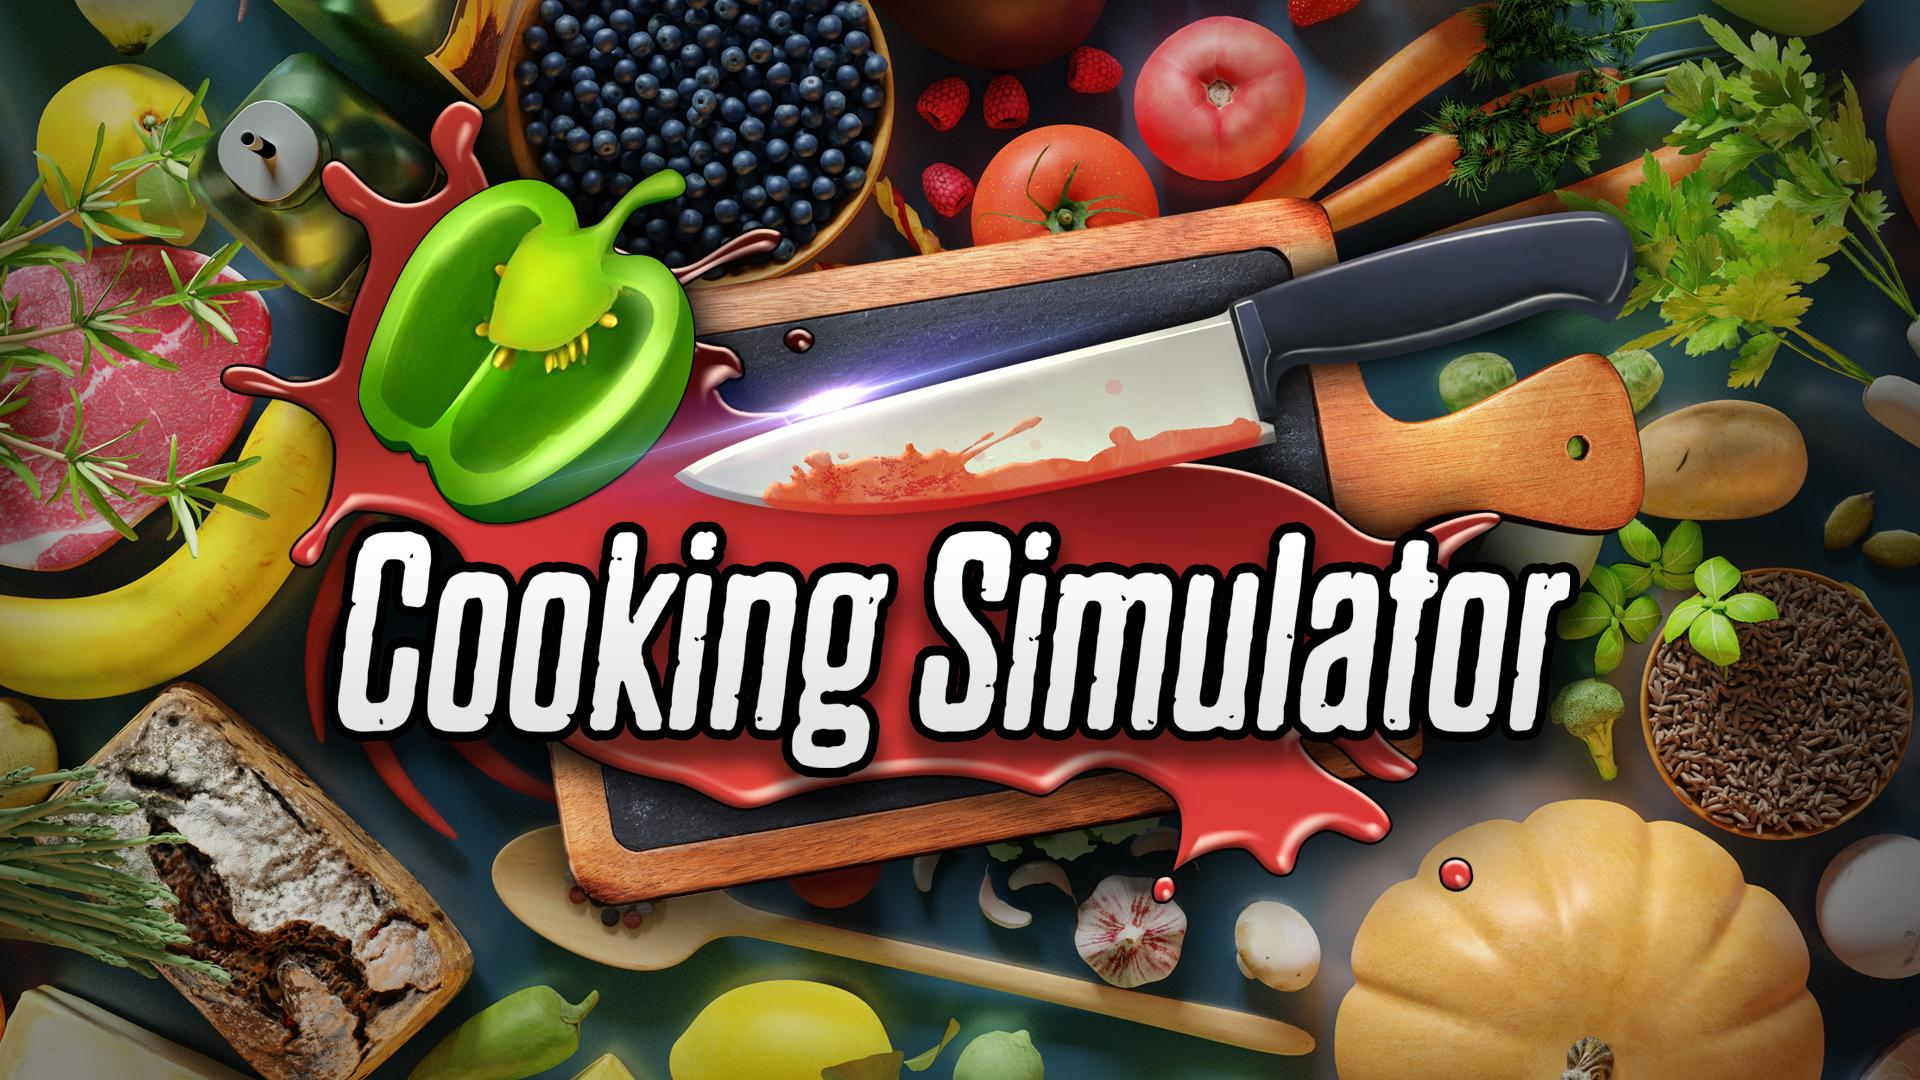 Cooking SCooking Simulator Full Version PC Game Downloadimulator Full Version PC Game Download